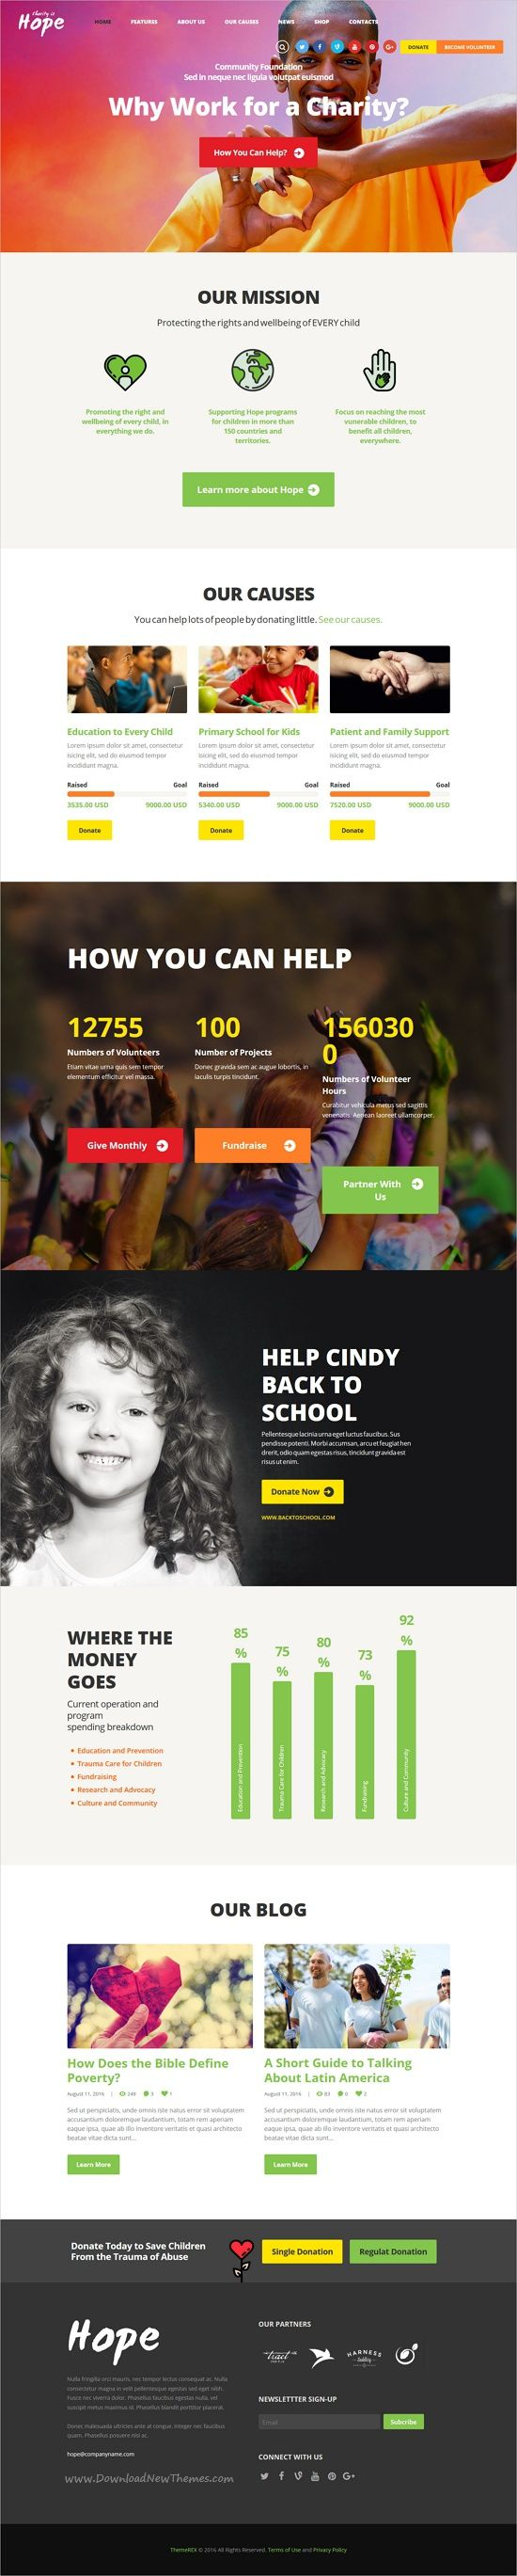 Hope is a wonderful 3in1 responsive #HTML5 template for #webdev #charity, NGO, donations, foundation, fundraising or #governmental social program websites download now➩  https://themeforest.net/item/hope-nonprofit-charity-donations-site-template/19334865?ref=Datasata